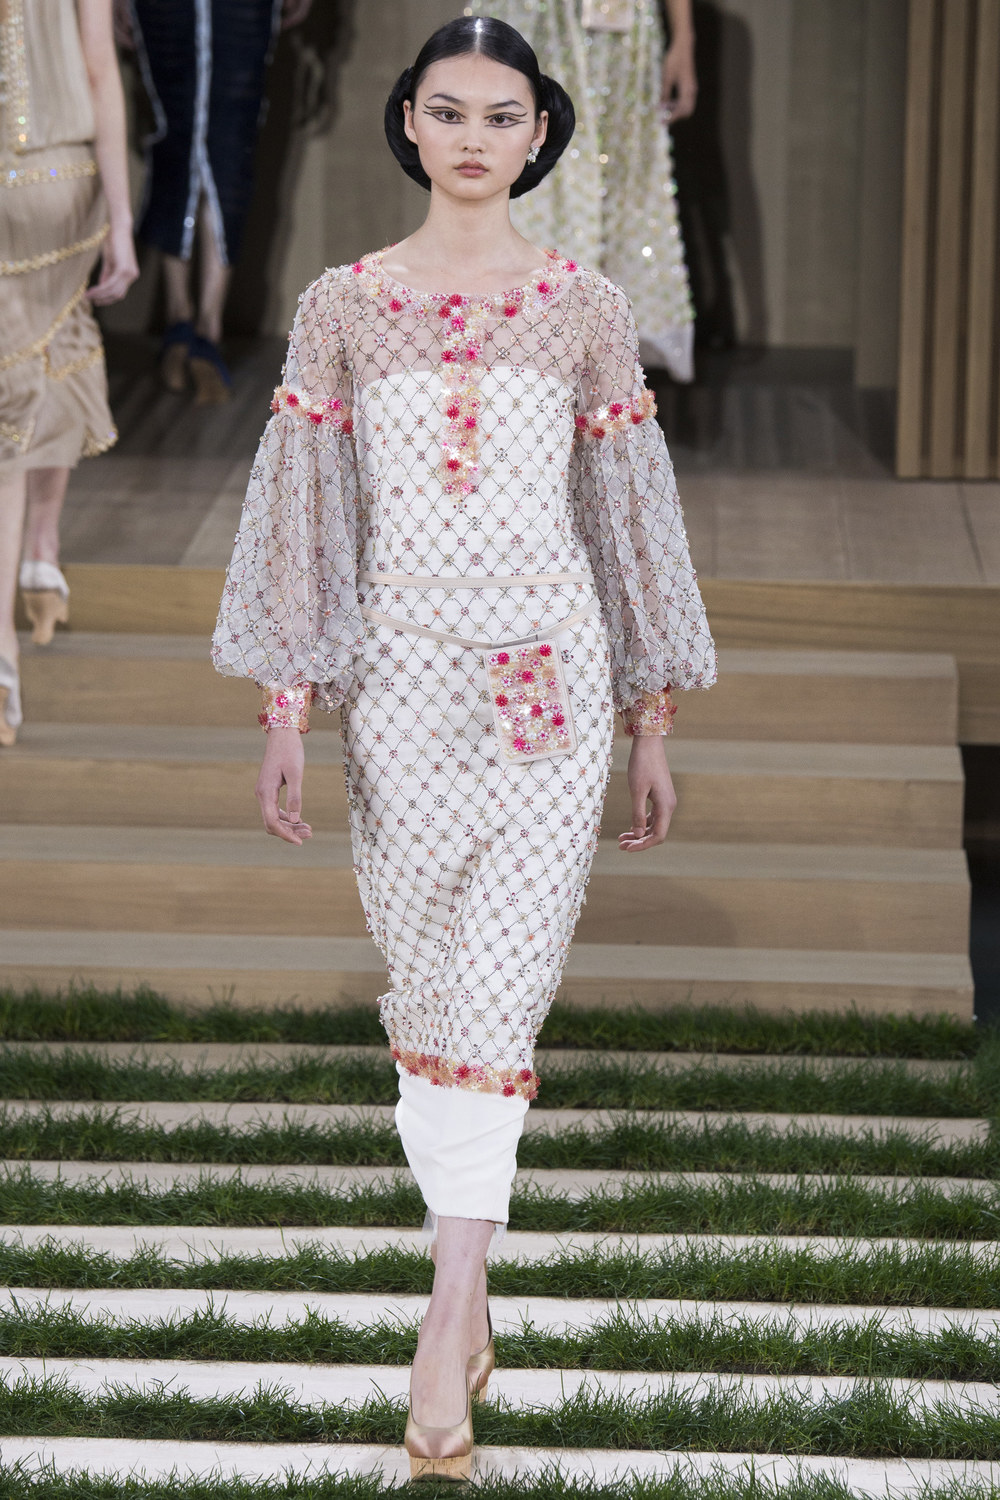 Chanel-Couture-Spring-2016-Paris-Fashion-Week-11.jpg